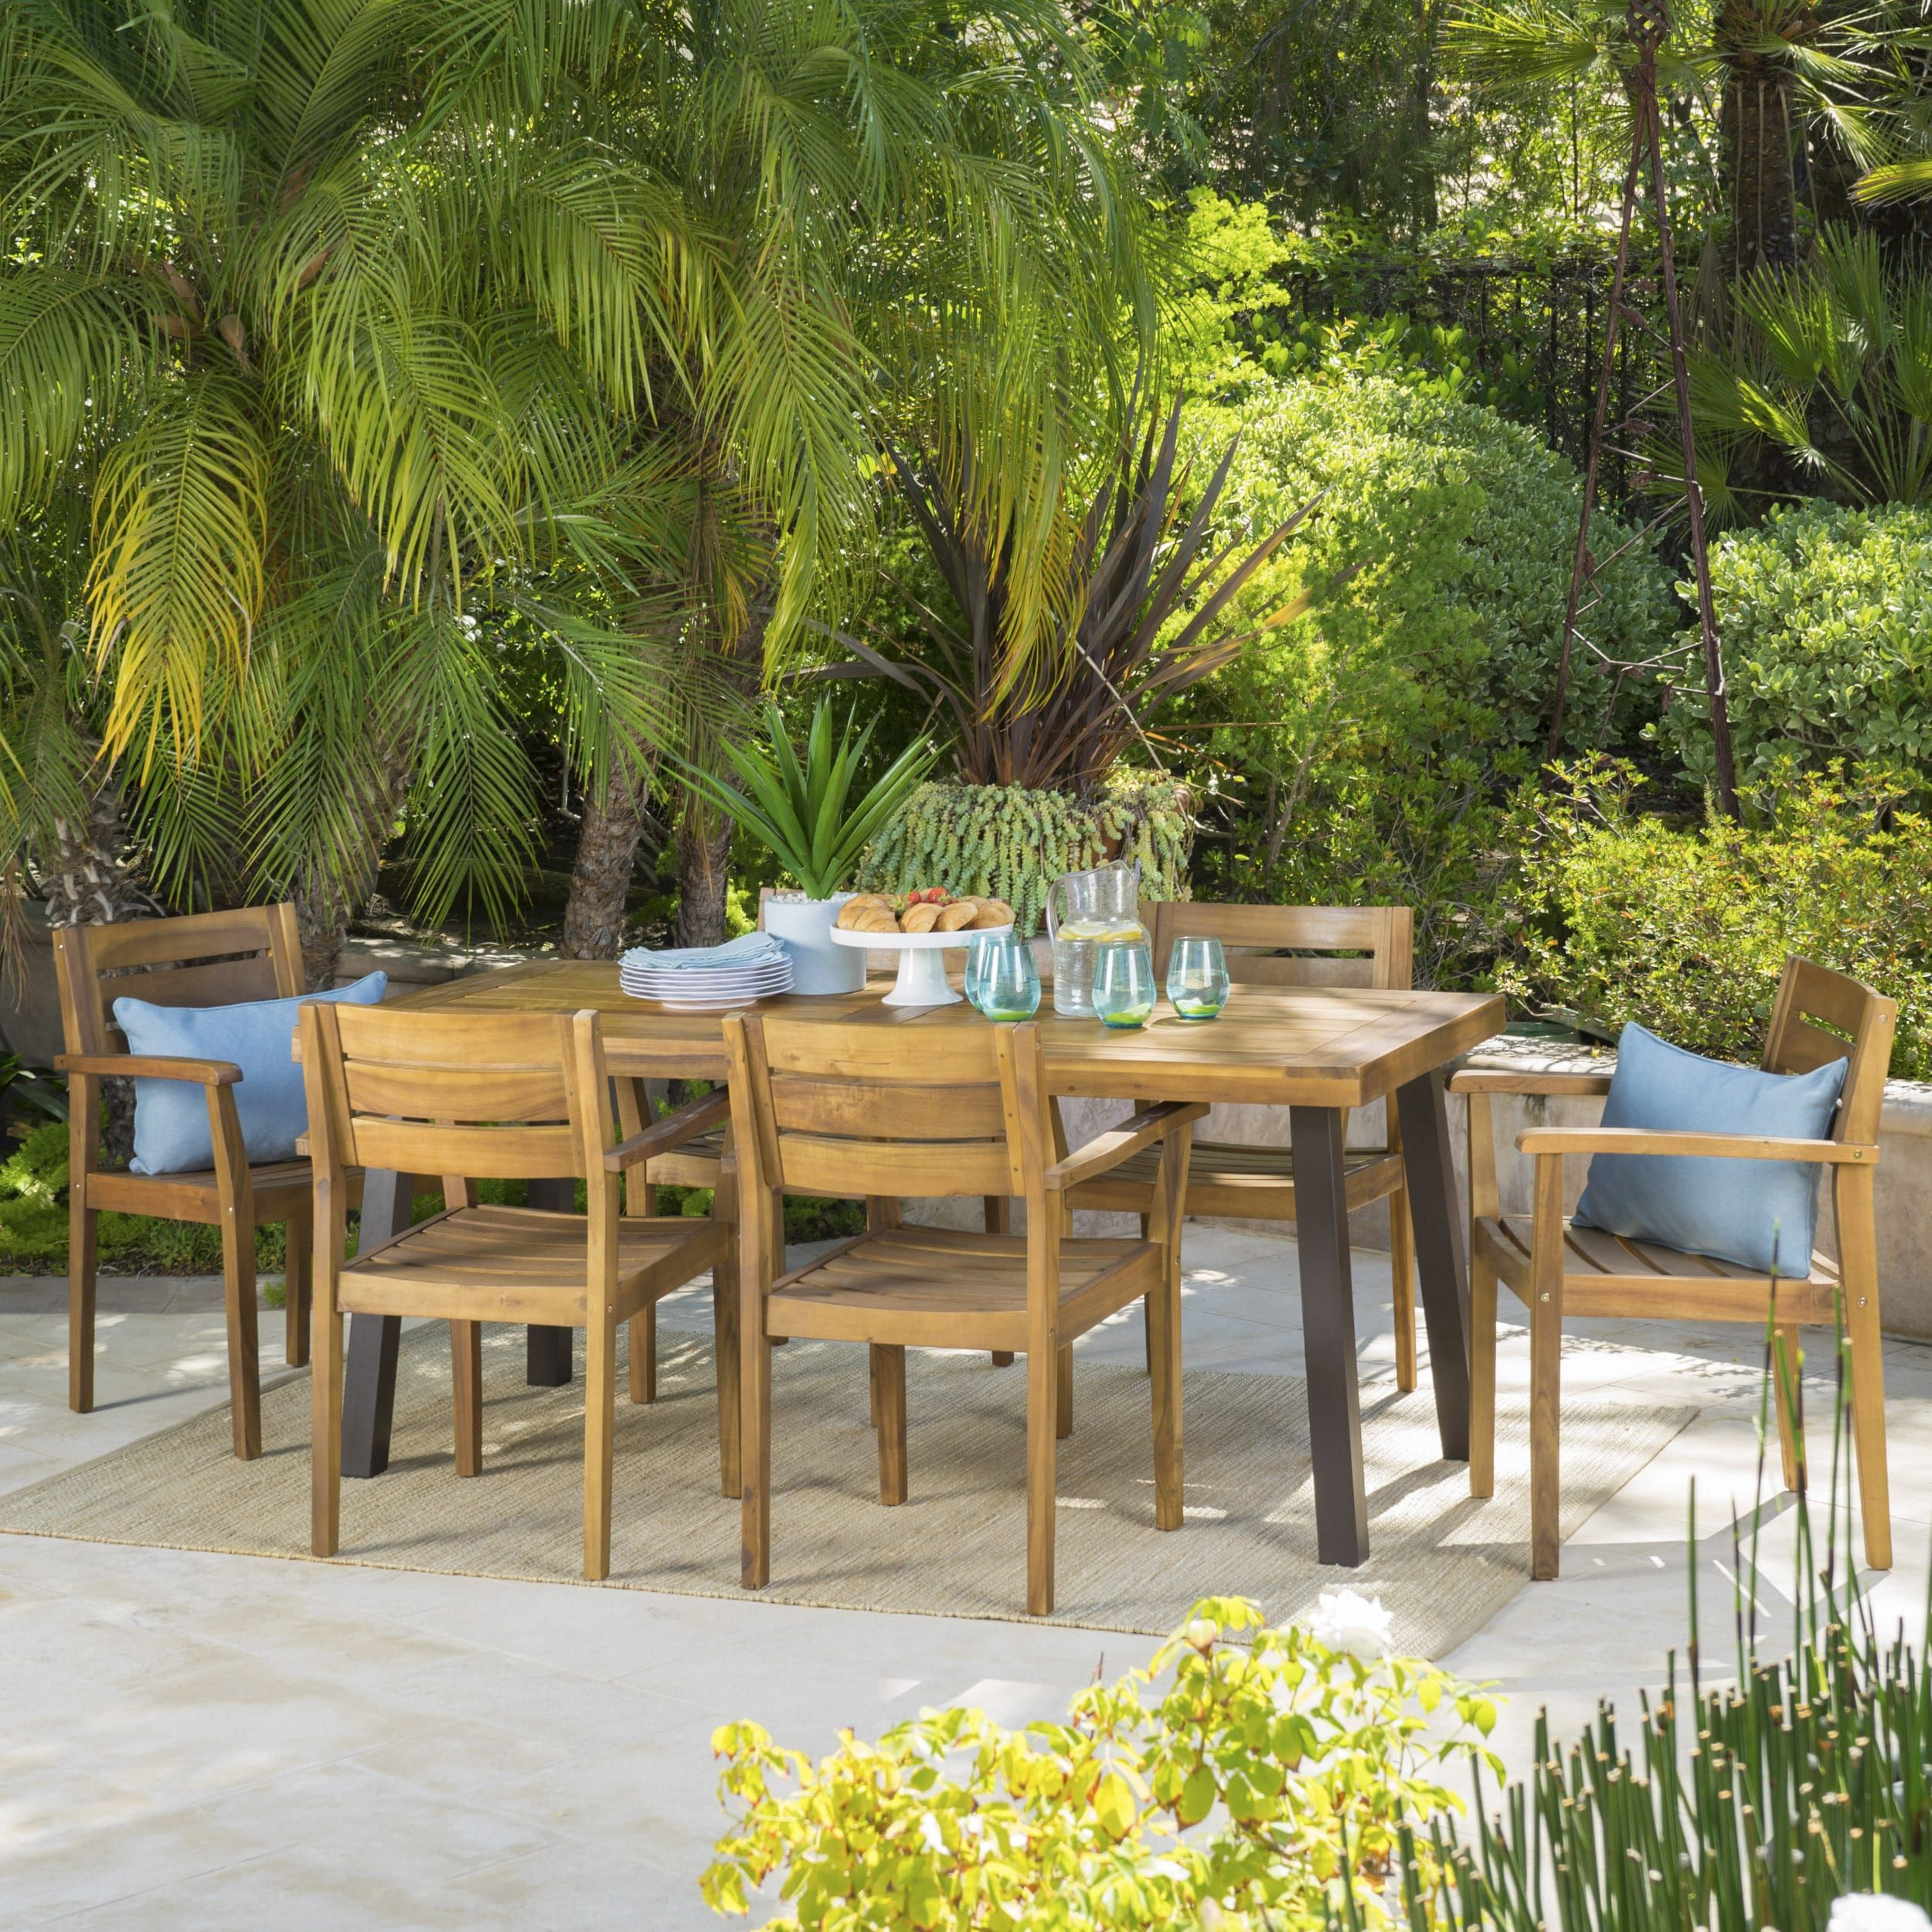 Avon Outdoor Rustic 7 Piece Rectangular Acacia Wood Dining Set By  Christopher Knight Home (